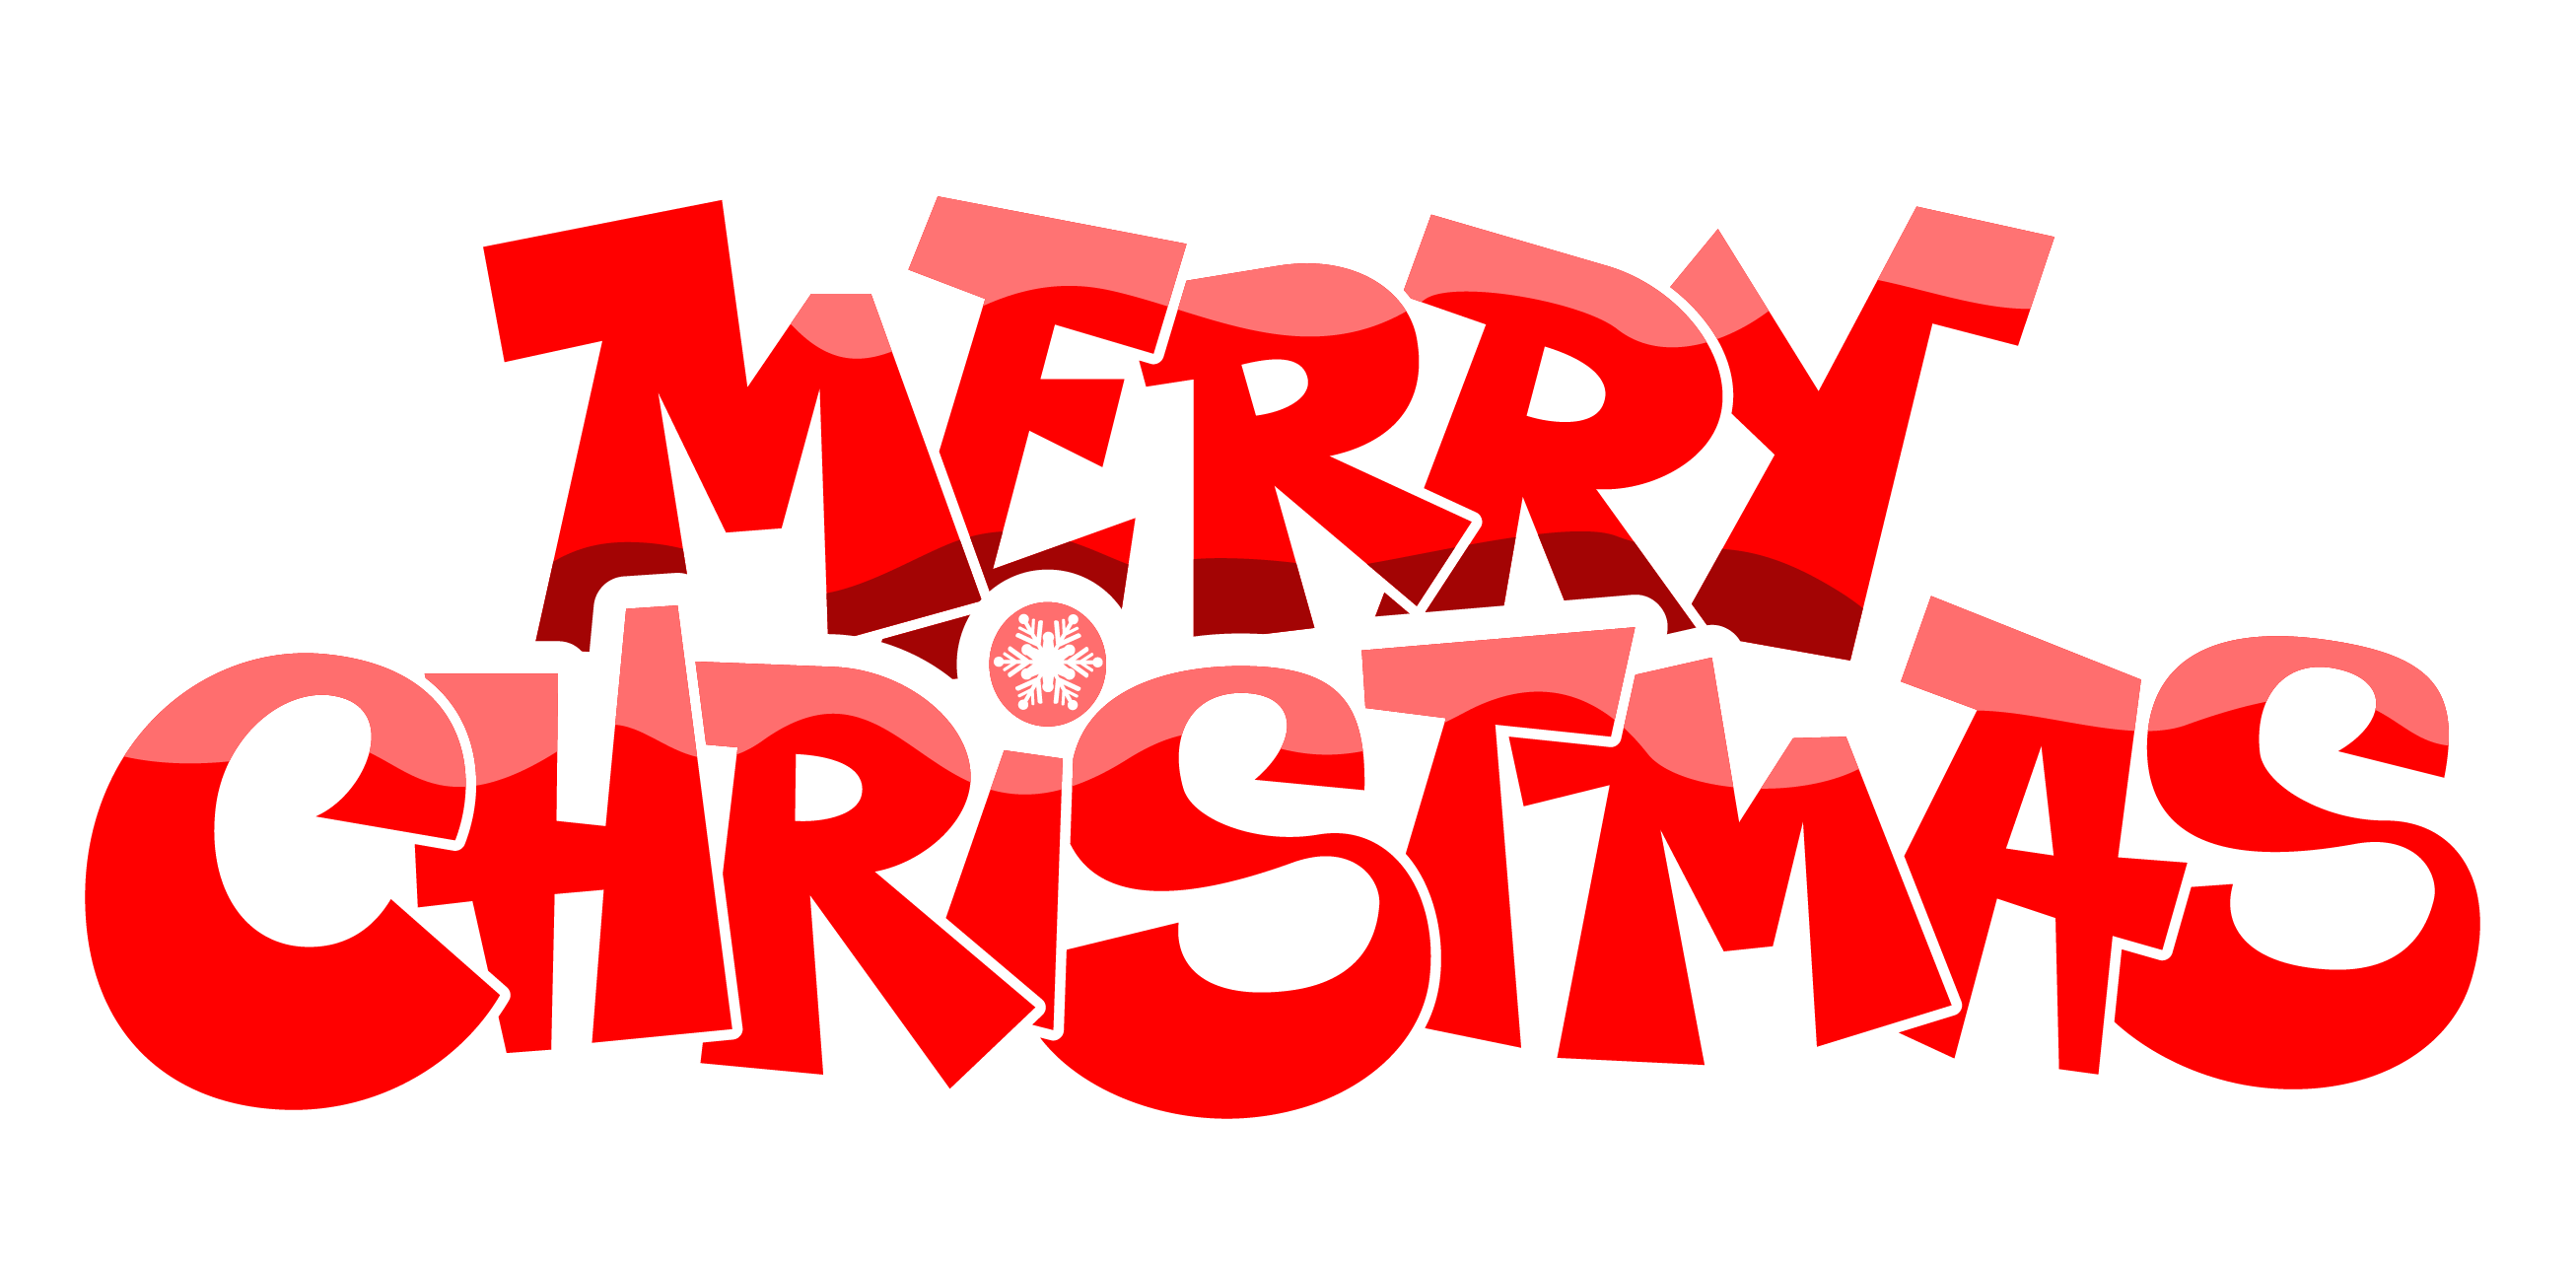 We wish you a merry christmas clipart picture black and white download Merry Christmas! picture black and white download